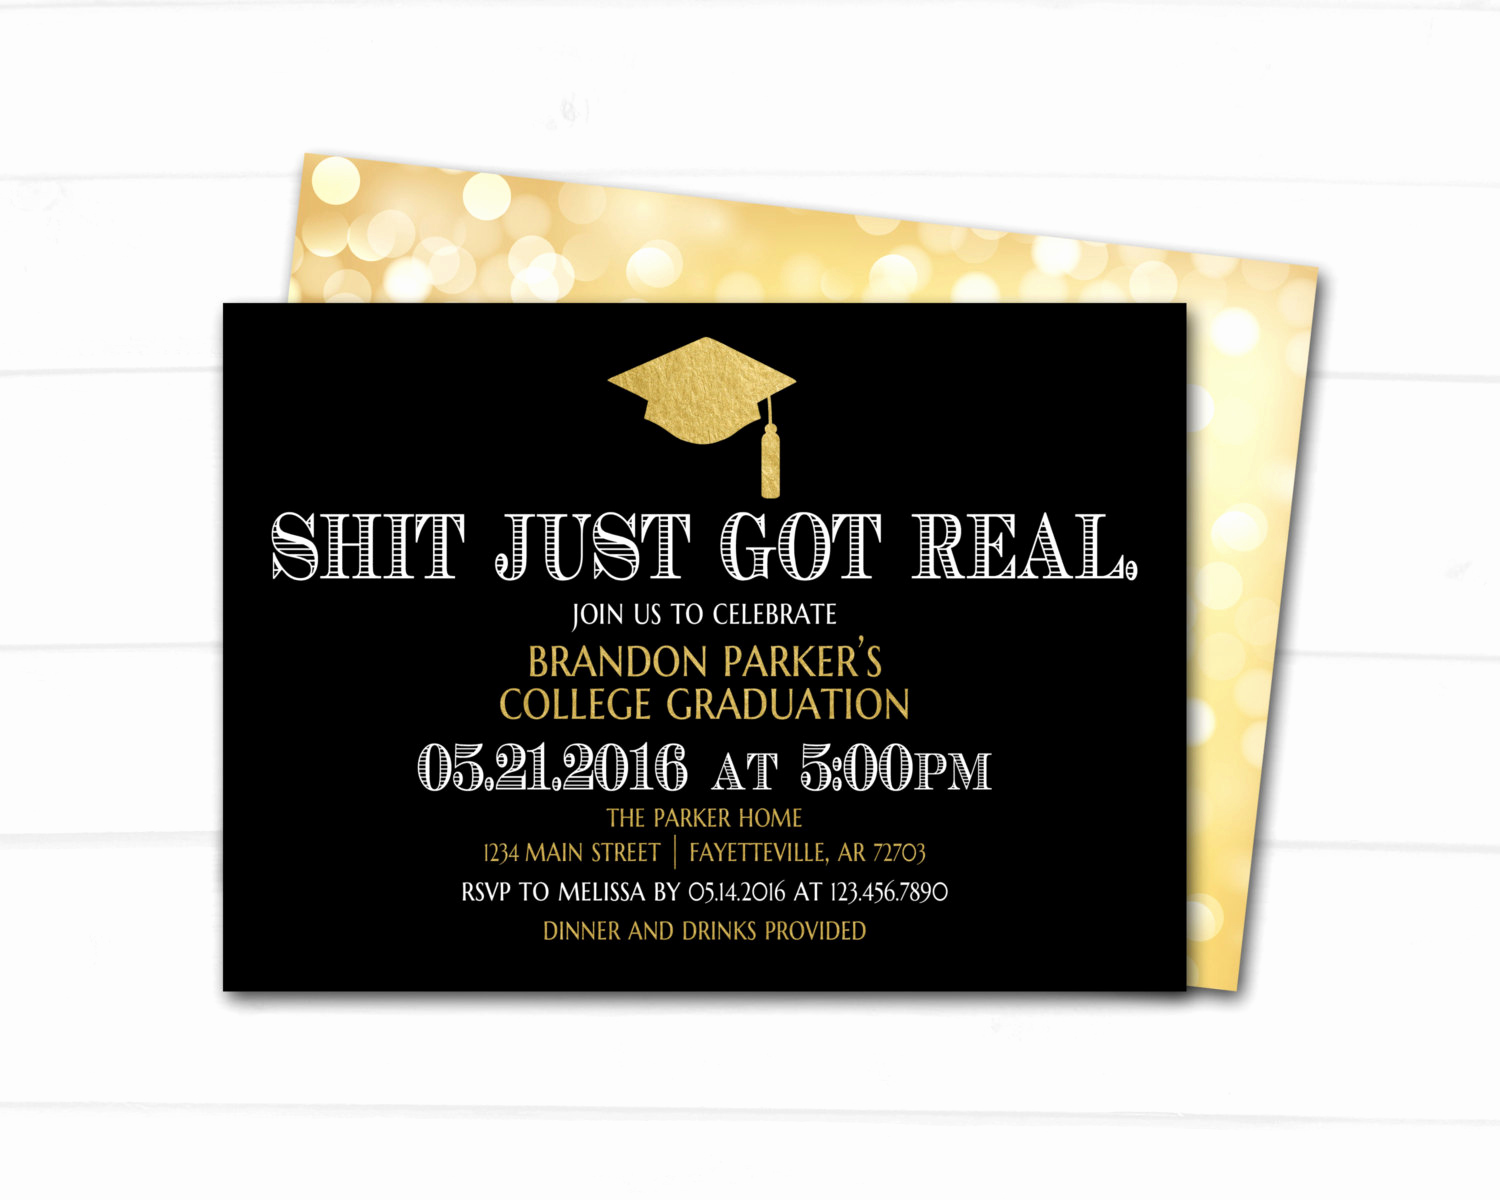 Catchy Graduation Invitation Phrases Awesome Graduation Graduation Invitation Shit Just Got Real Black